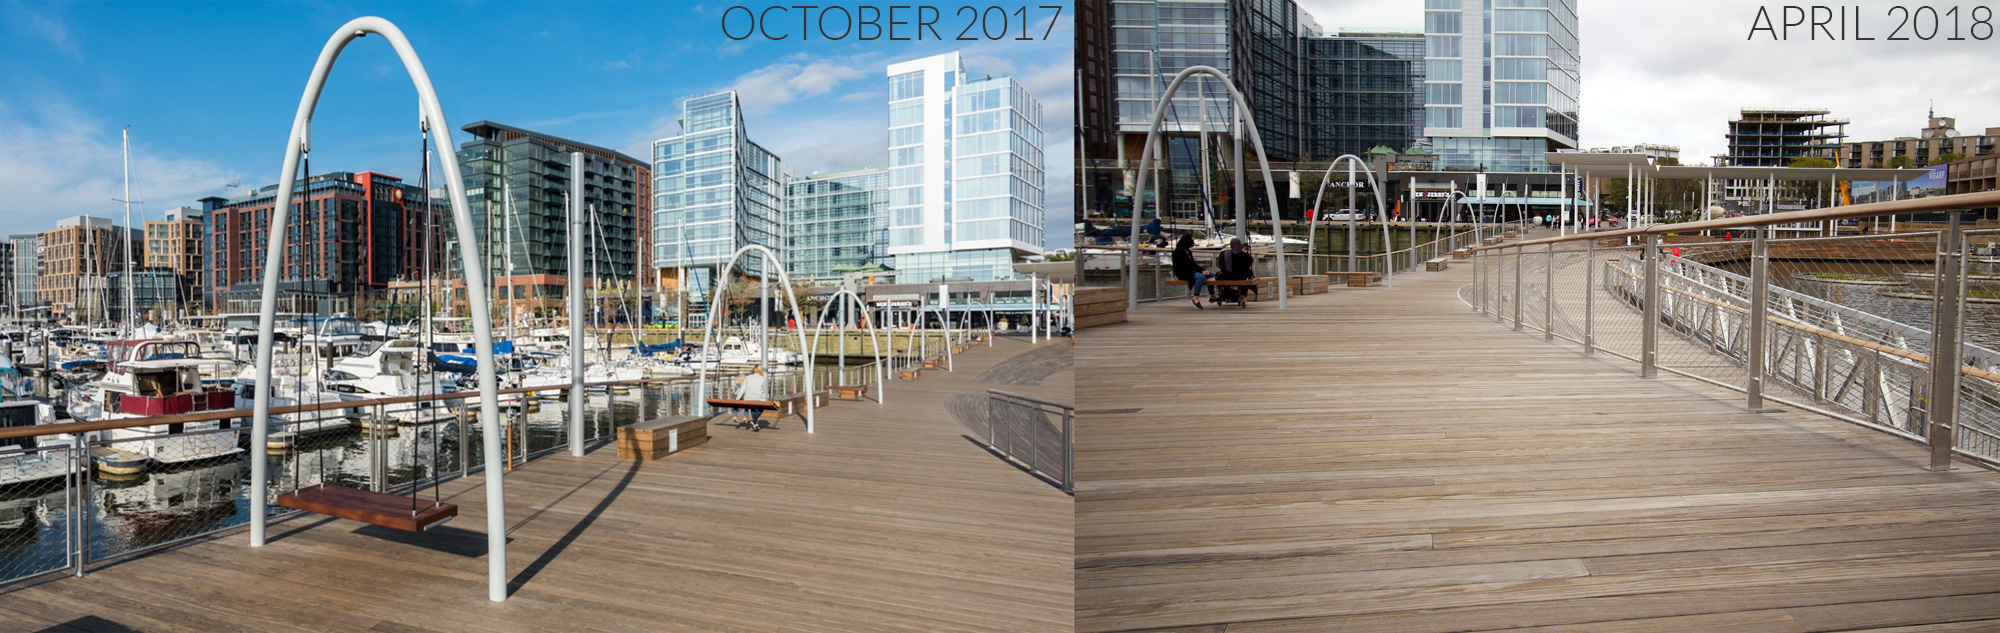 weathered Kebony decking before and after